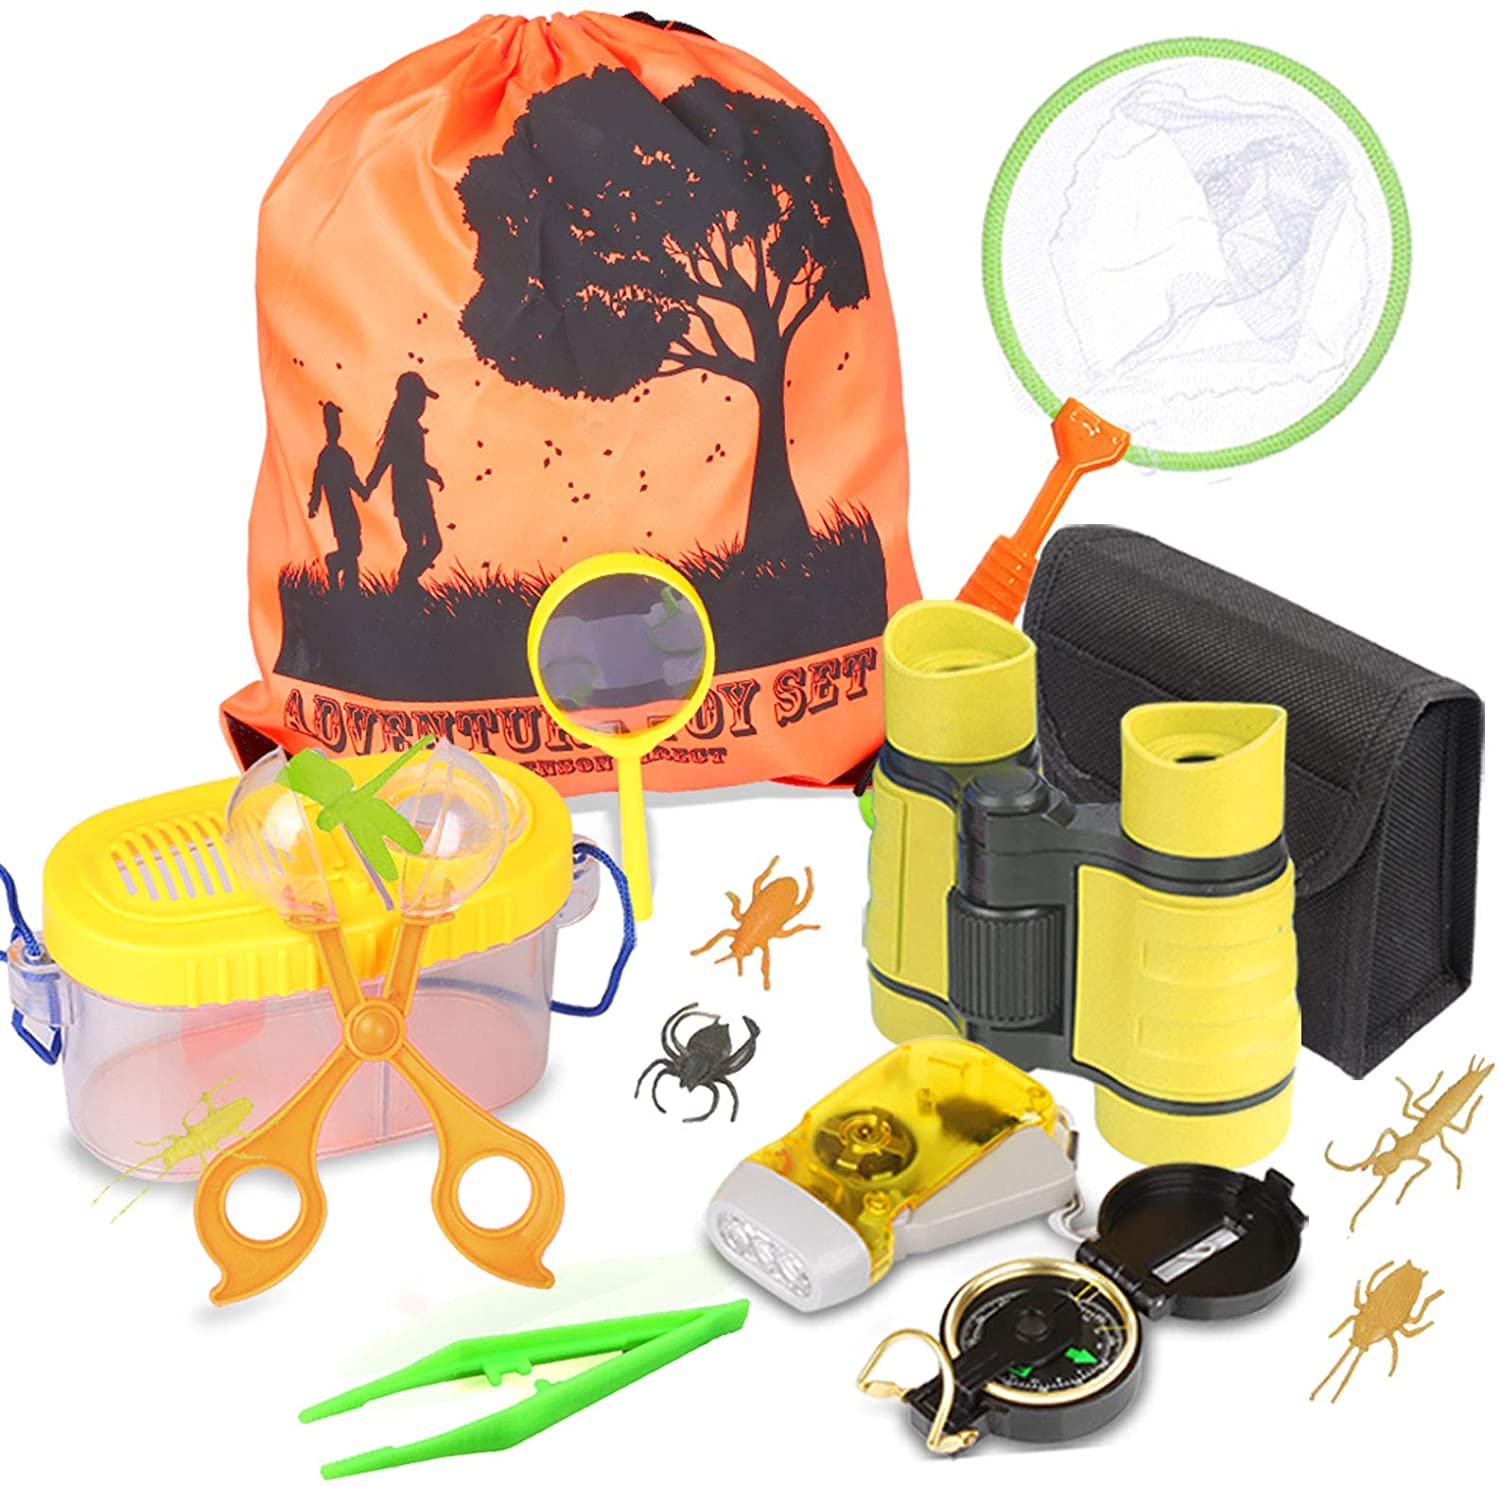 Outdoor Explorer Kit 14 Pack Kids Bug Catcher Toys Gift For 3 4 5 6-12 Years Old